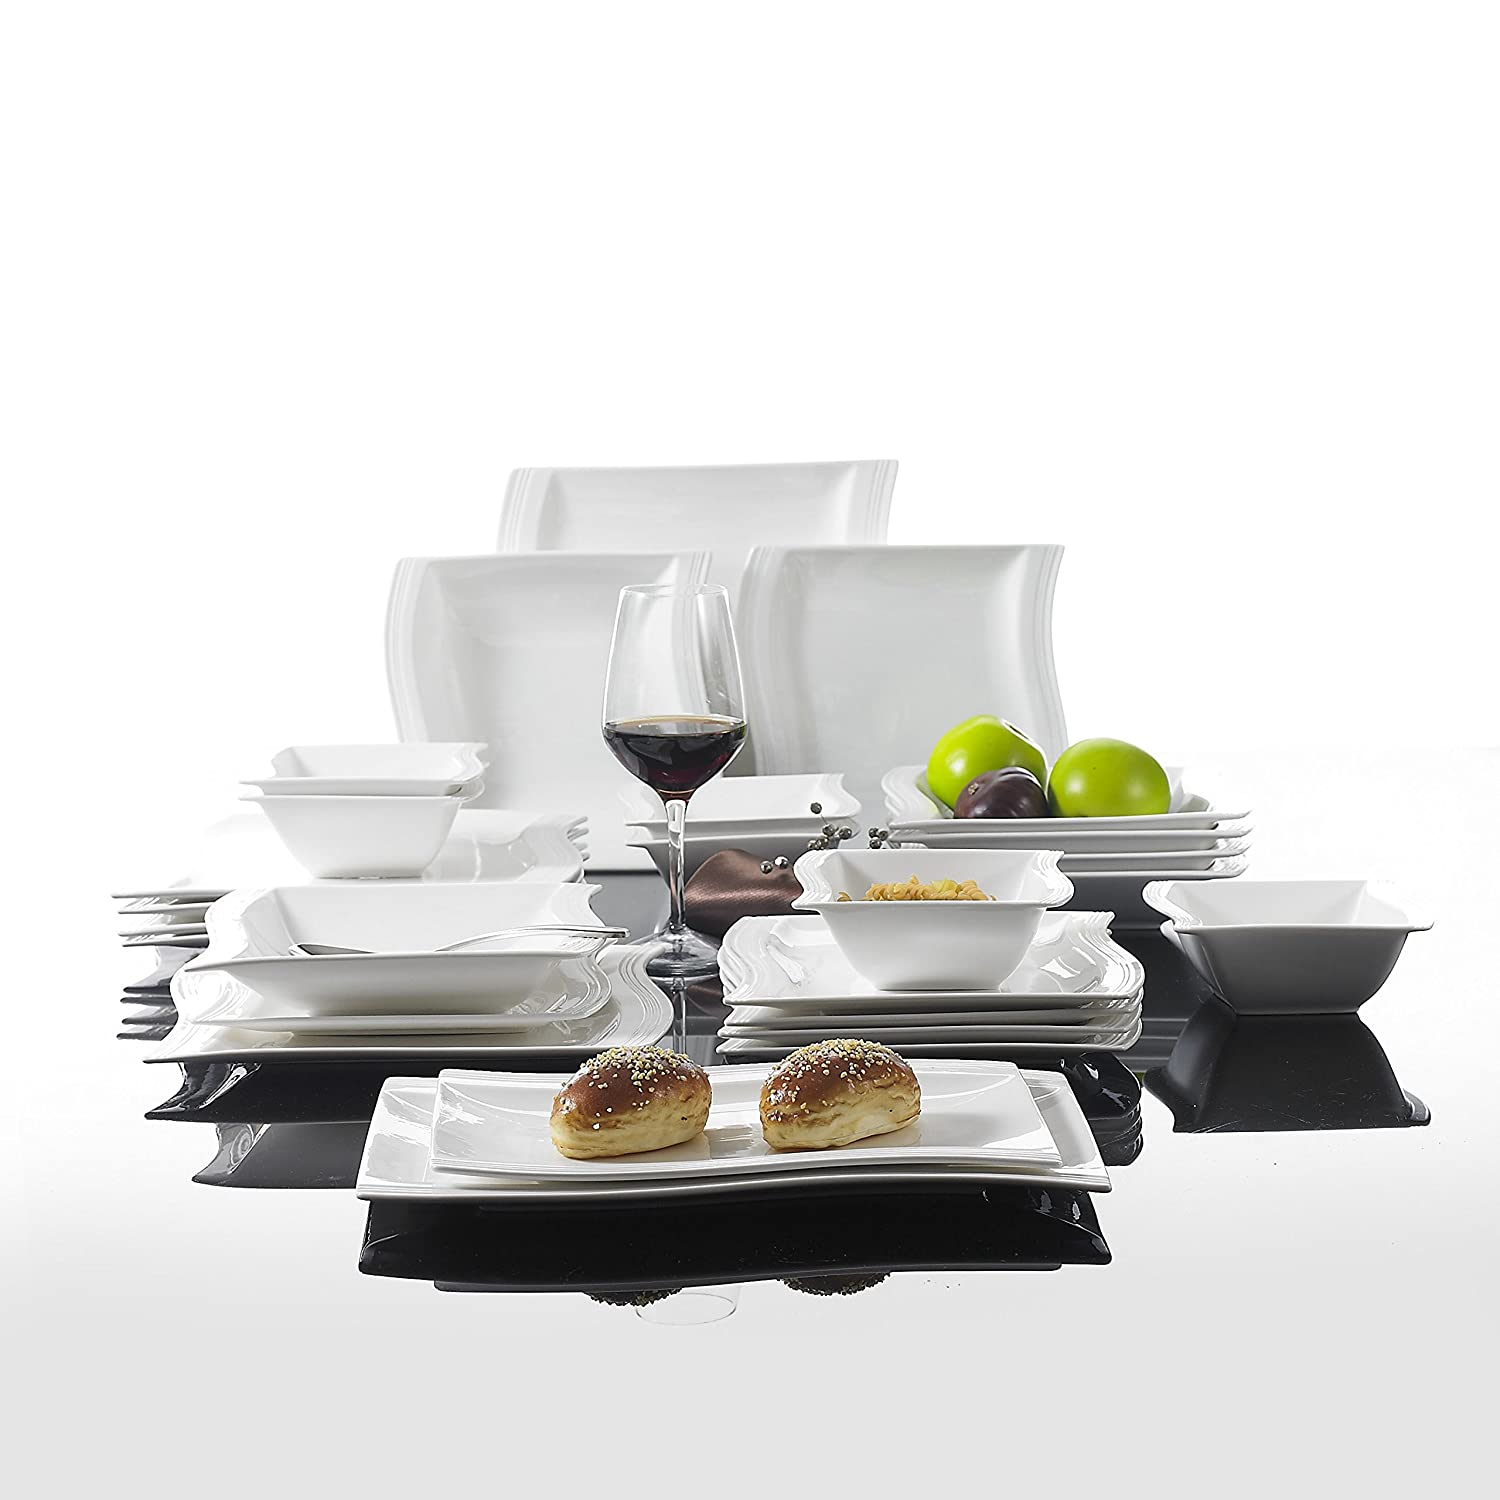 Amazon.com | Malacasa Series Flora 26-Piece Ivory White Porcelain Dinner Combi-Set with 6 Cereal Bowls 6 Dessert Plates 6 Soup Plates 6 Dinner Plates and ...  sc 1 st  Amazon.com & Amazon.com | Malacasa Series Flora 26-Piece Ivory White Porcelain ...